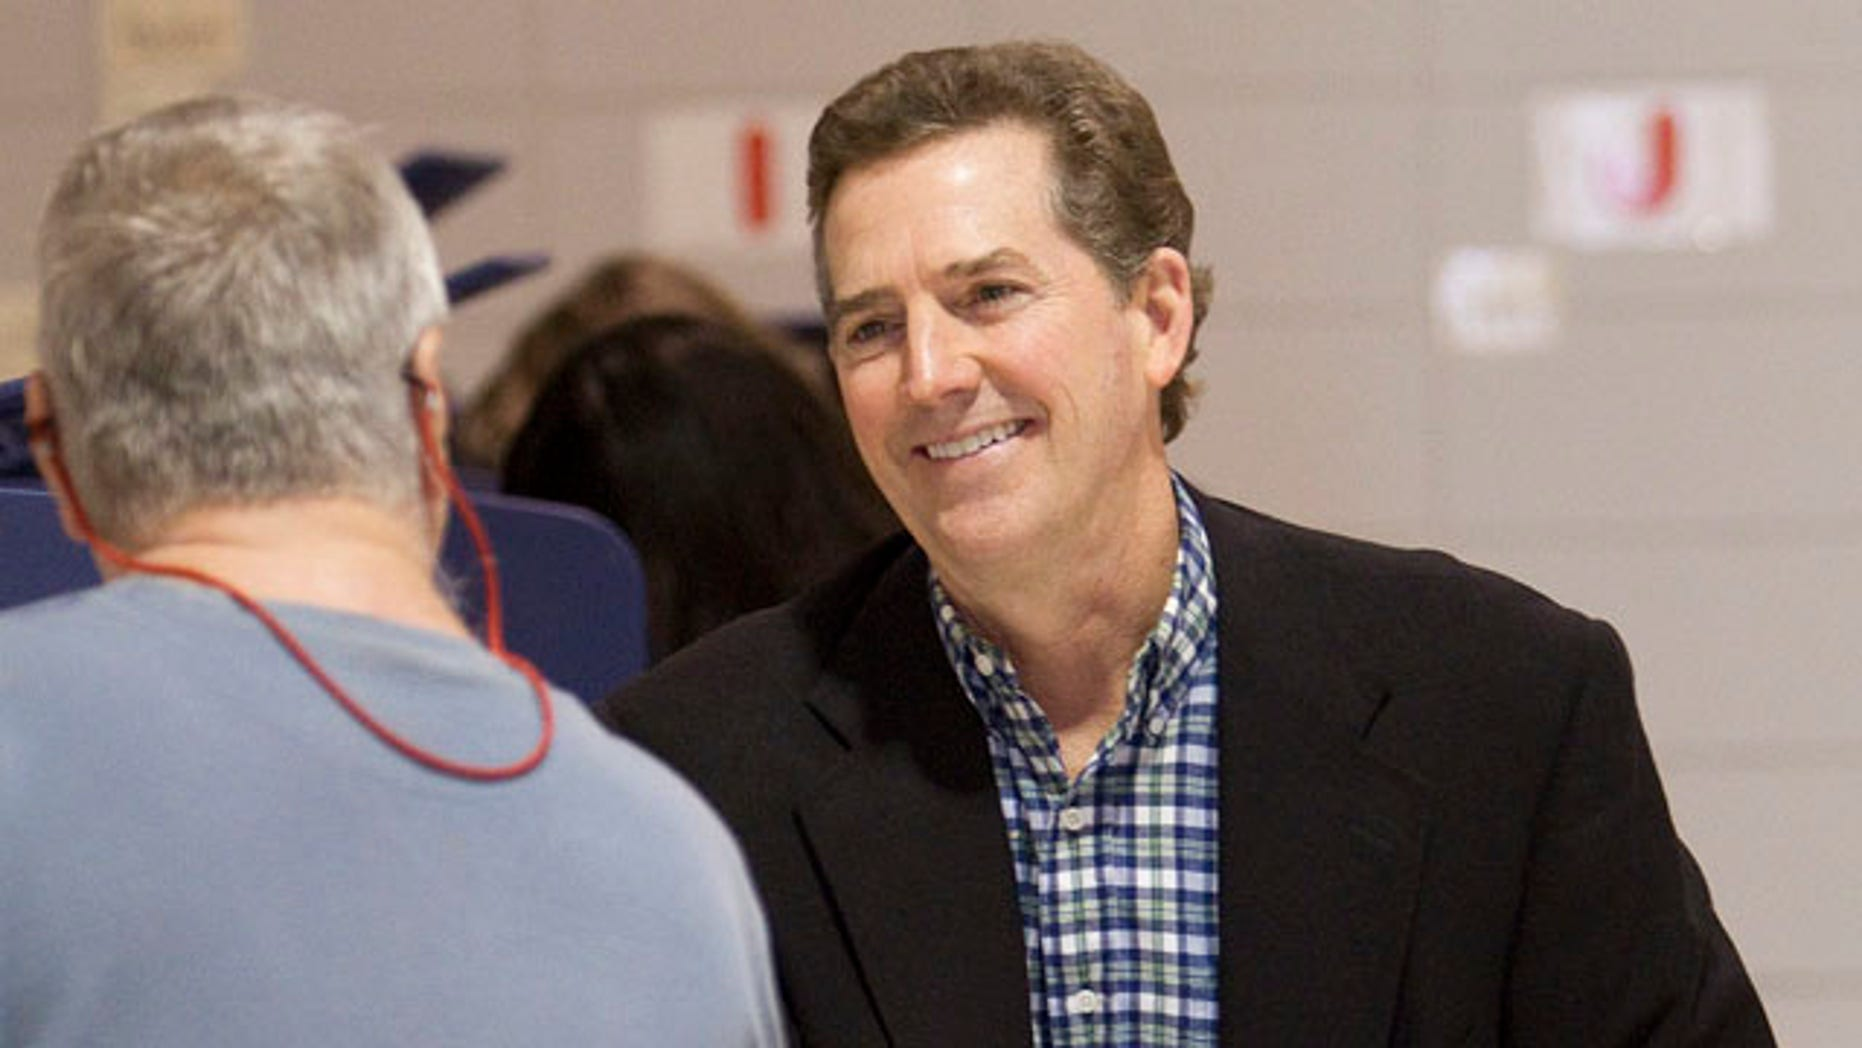 Nov. 2: Incumbent U.S. Sen. Jim DeMint, right, waits to cast his vote at Mitchell Road Elementary School in Greenville, S.C. DeMint won an easy election for a second term.